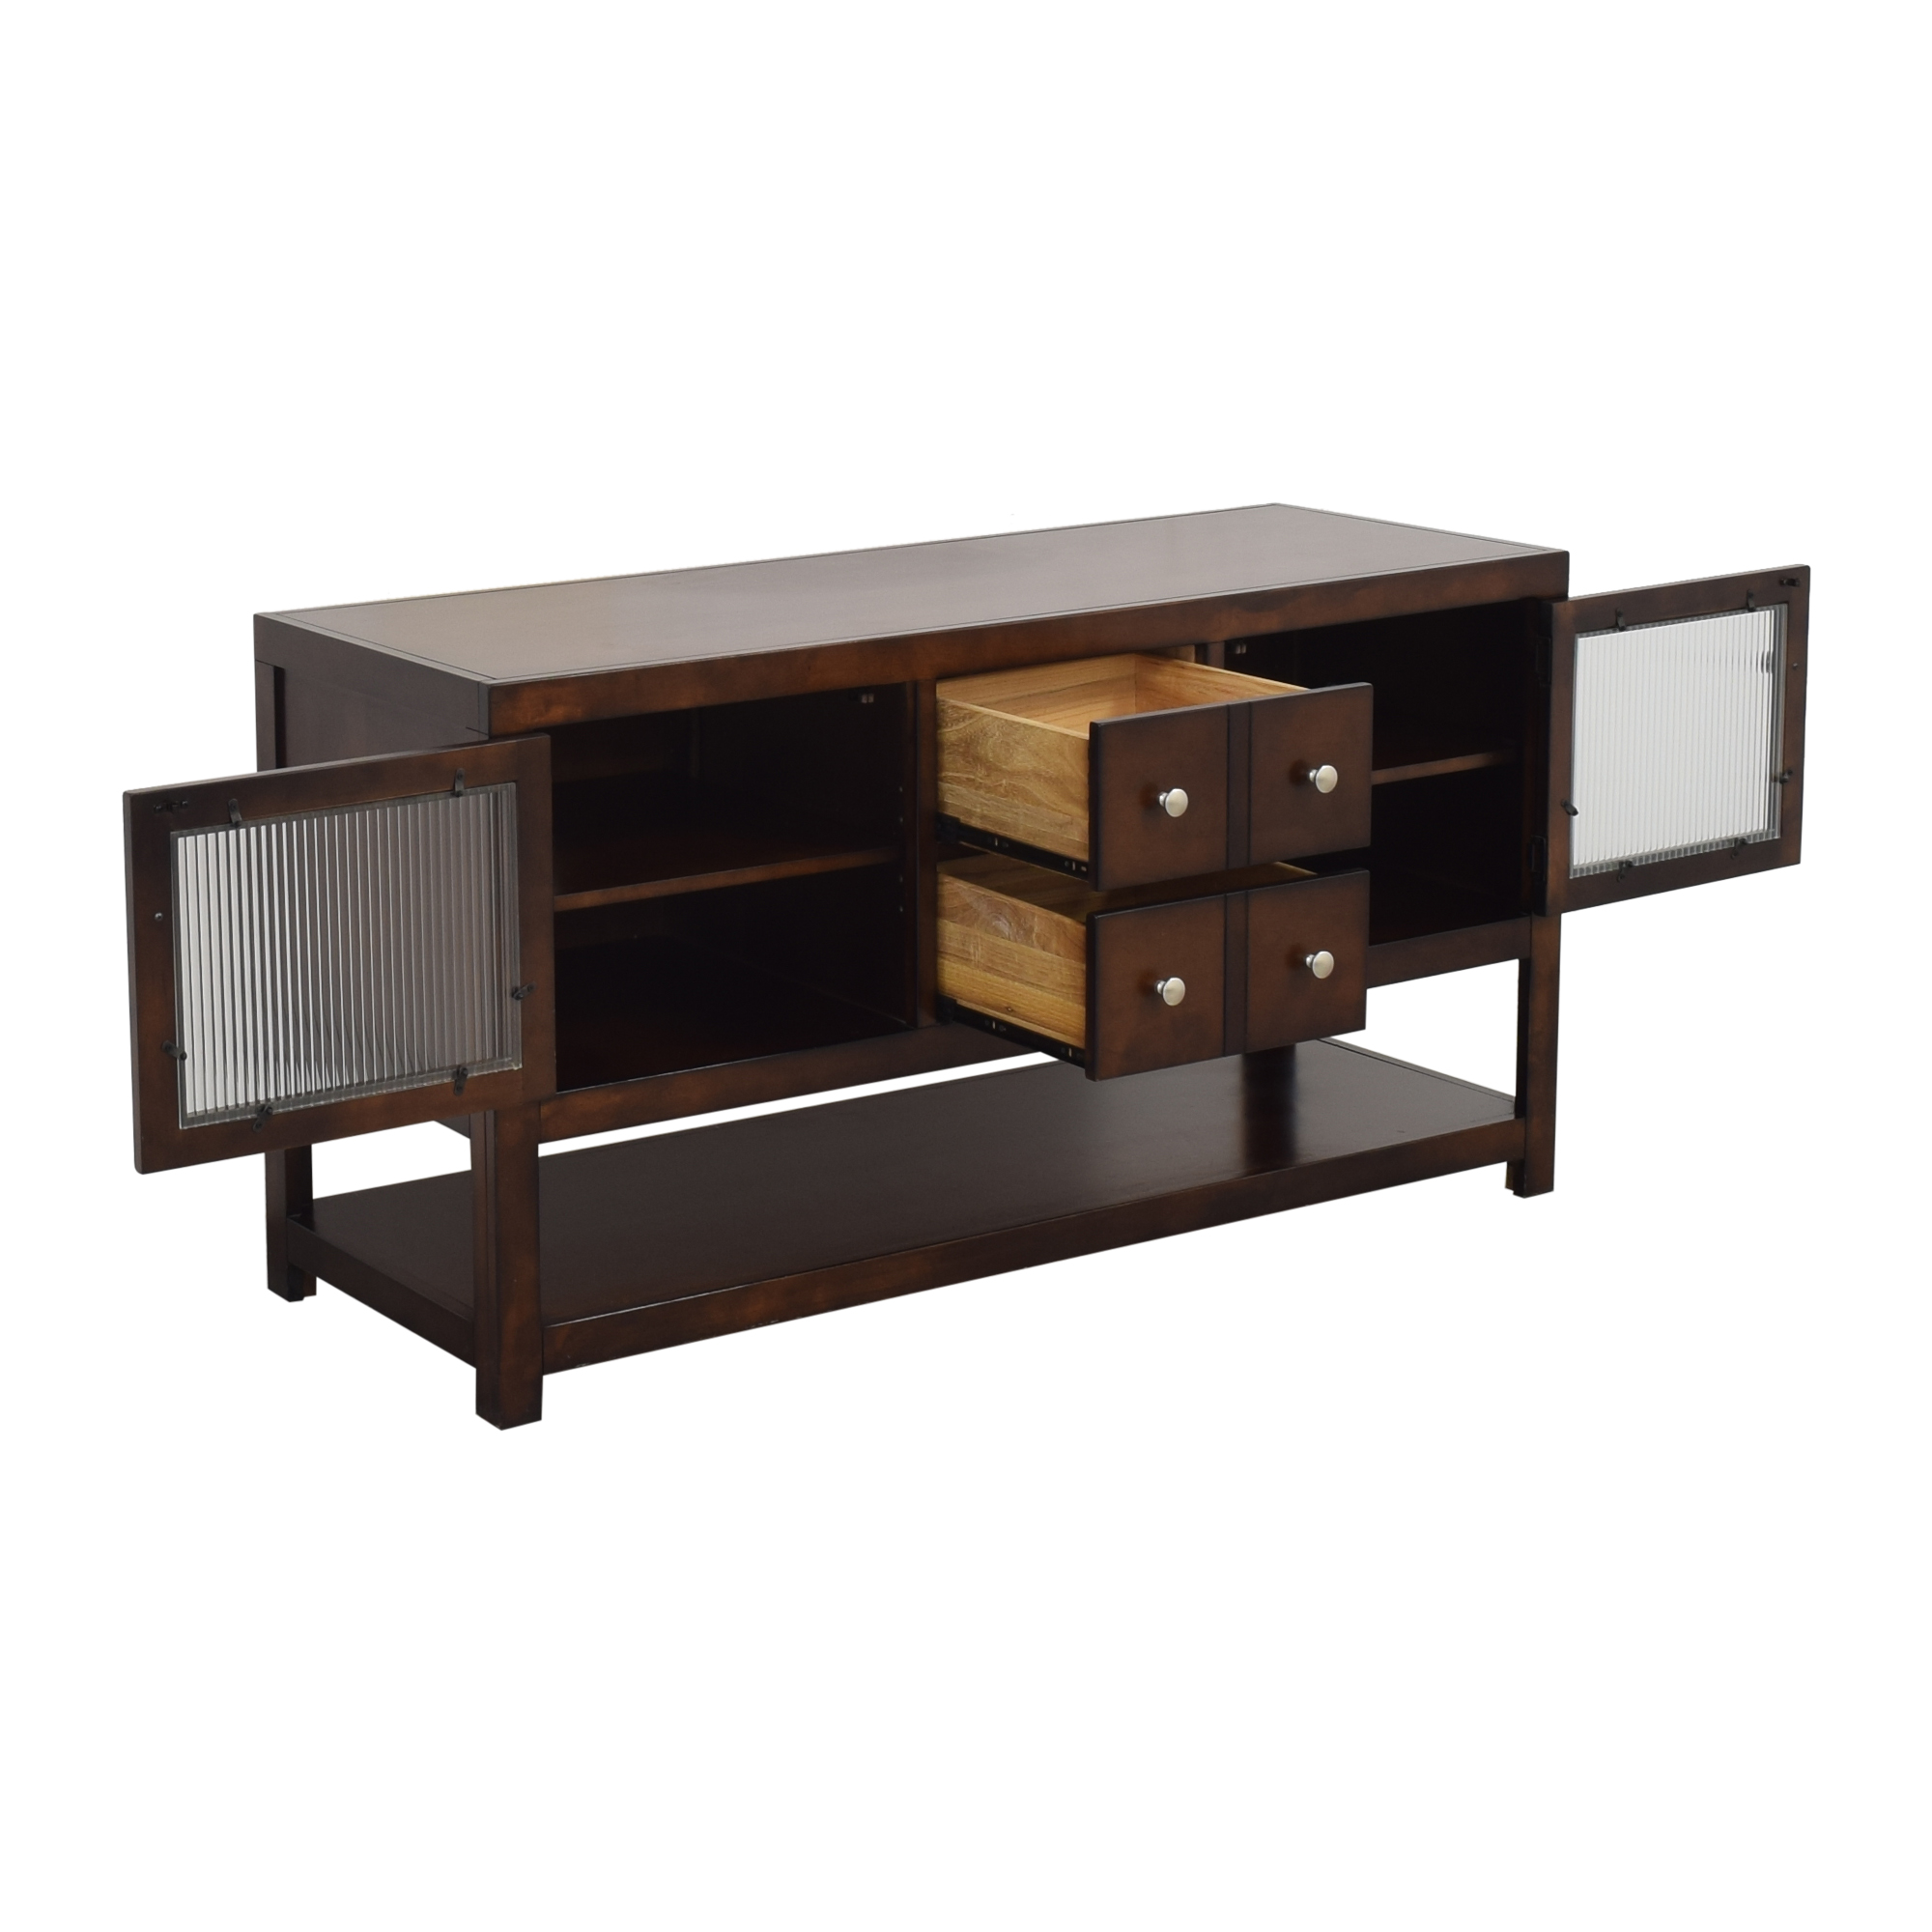 Raymour & Flanigan Raymour and Flanigan Media Console with Cabinets on sale